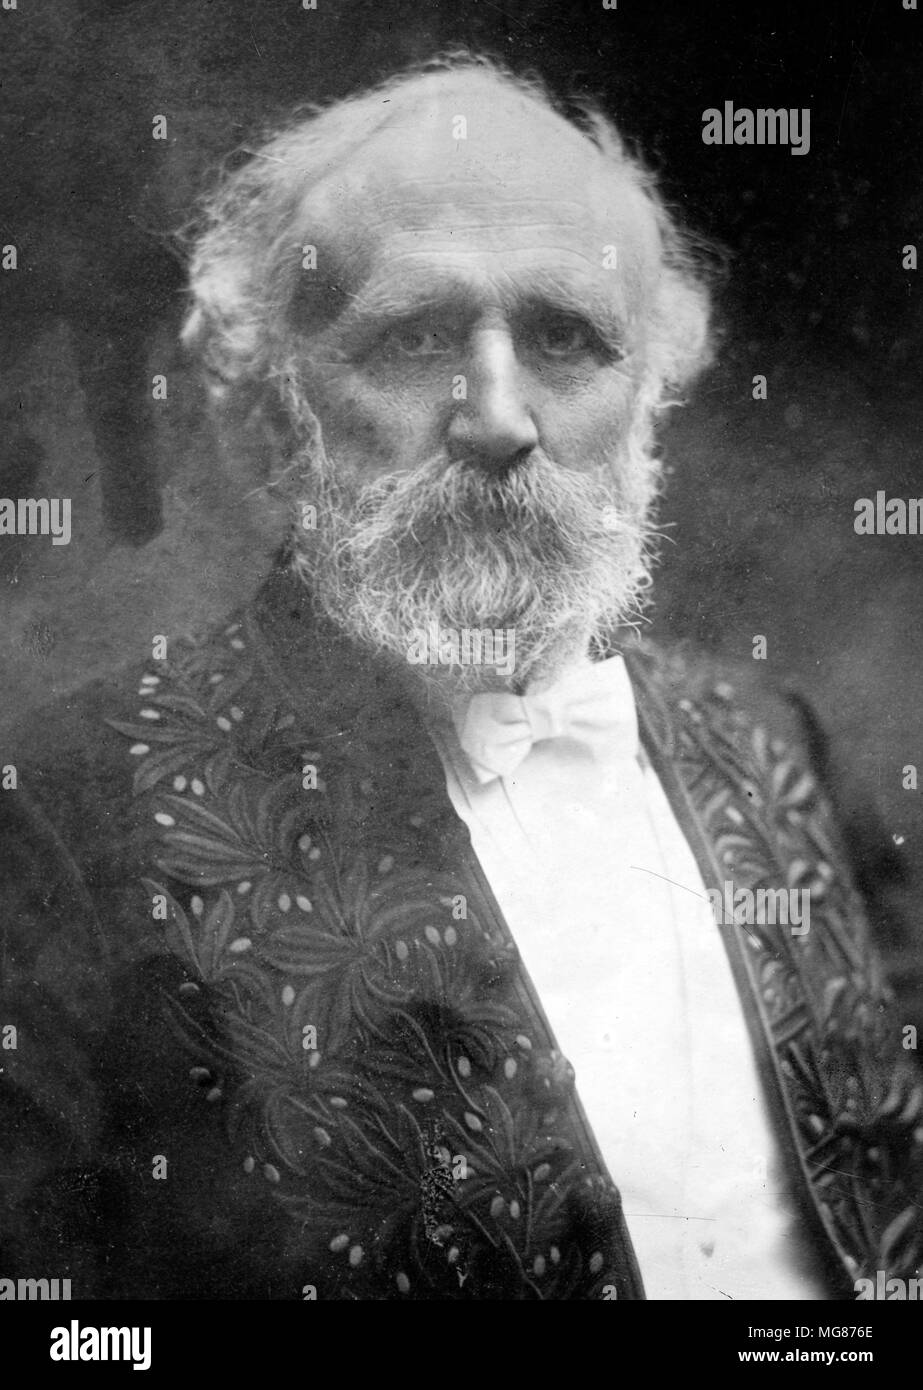 Alexandre-Félix-Joseph Ribot (1842 – 1923) was a French politician, four times Prime Minister. - Stock Image